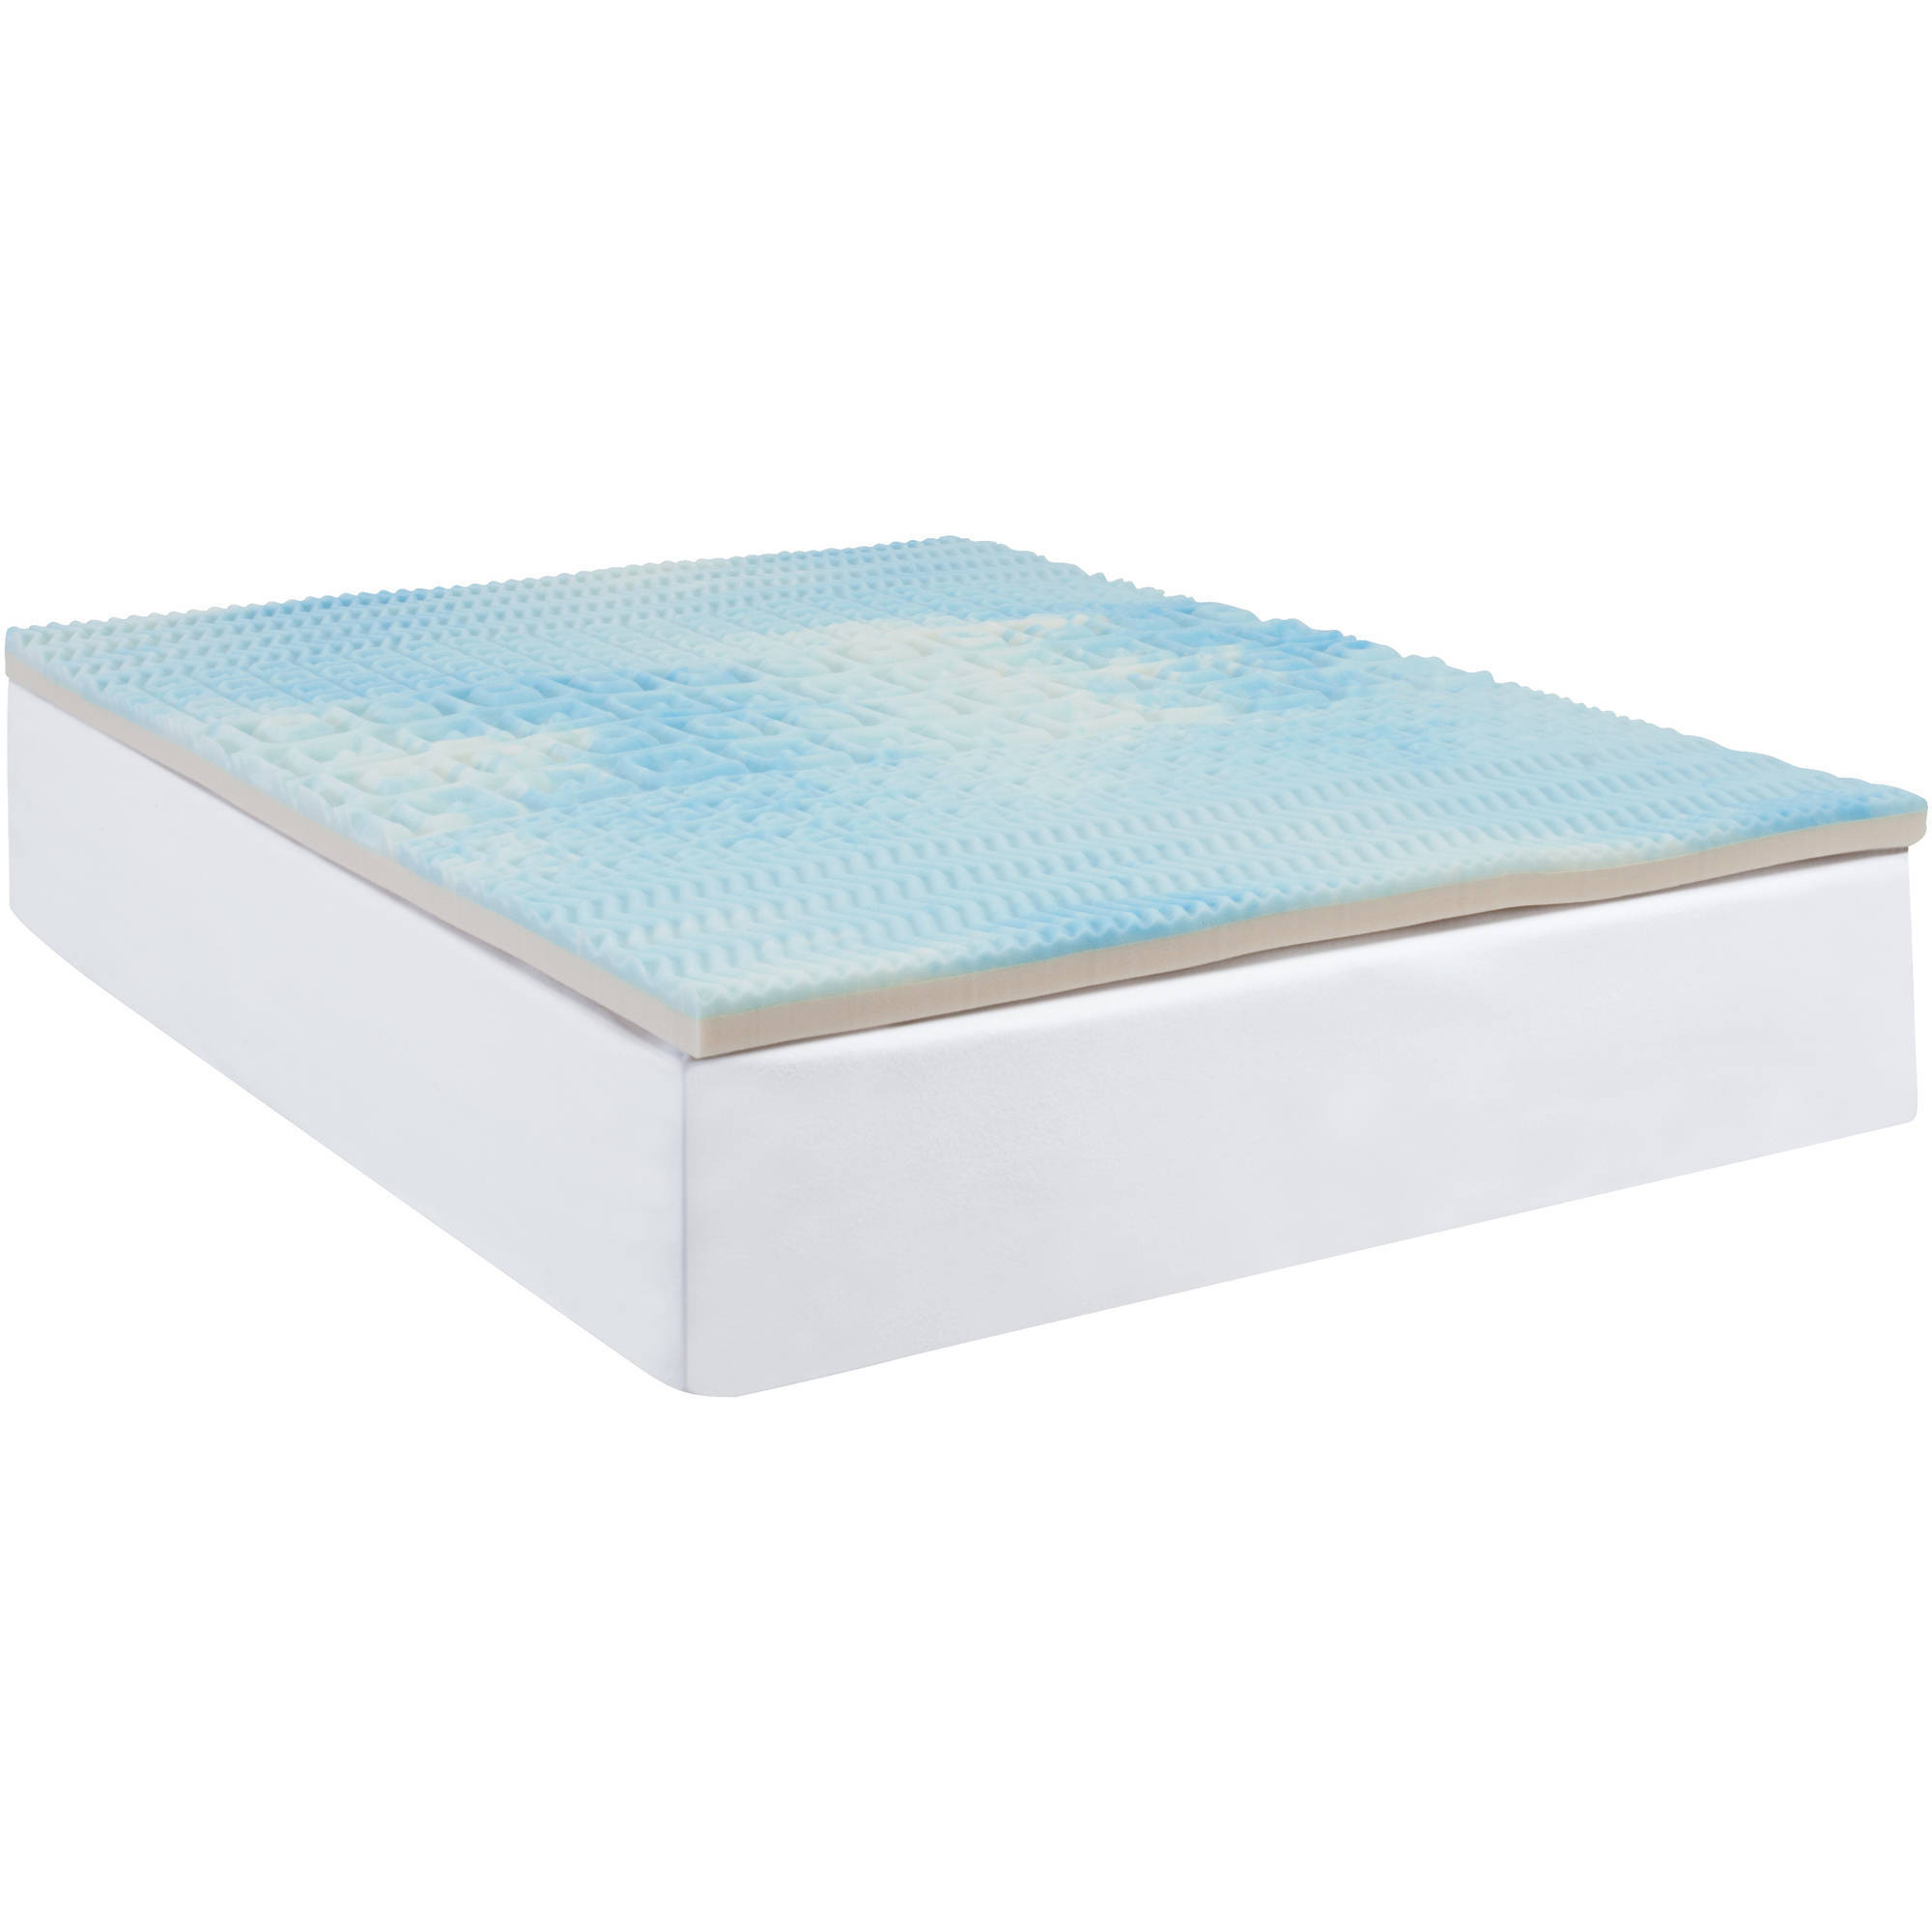 Buy Mattress Topper Beautyrest Five Zone Fusion Foam Mattress Topper Multiple